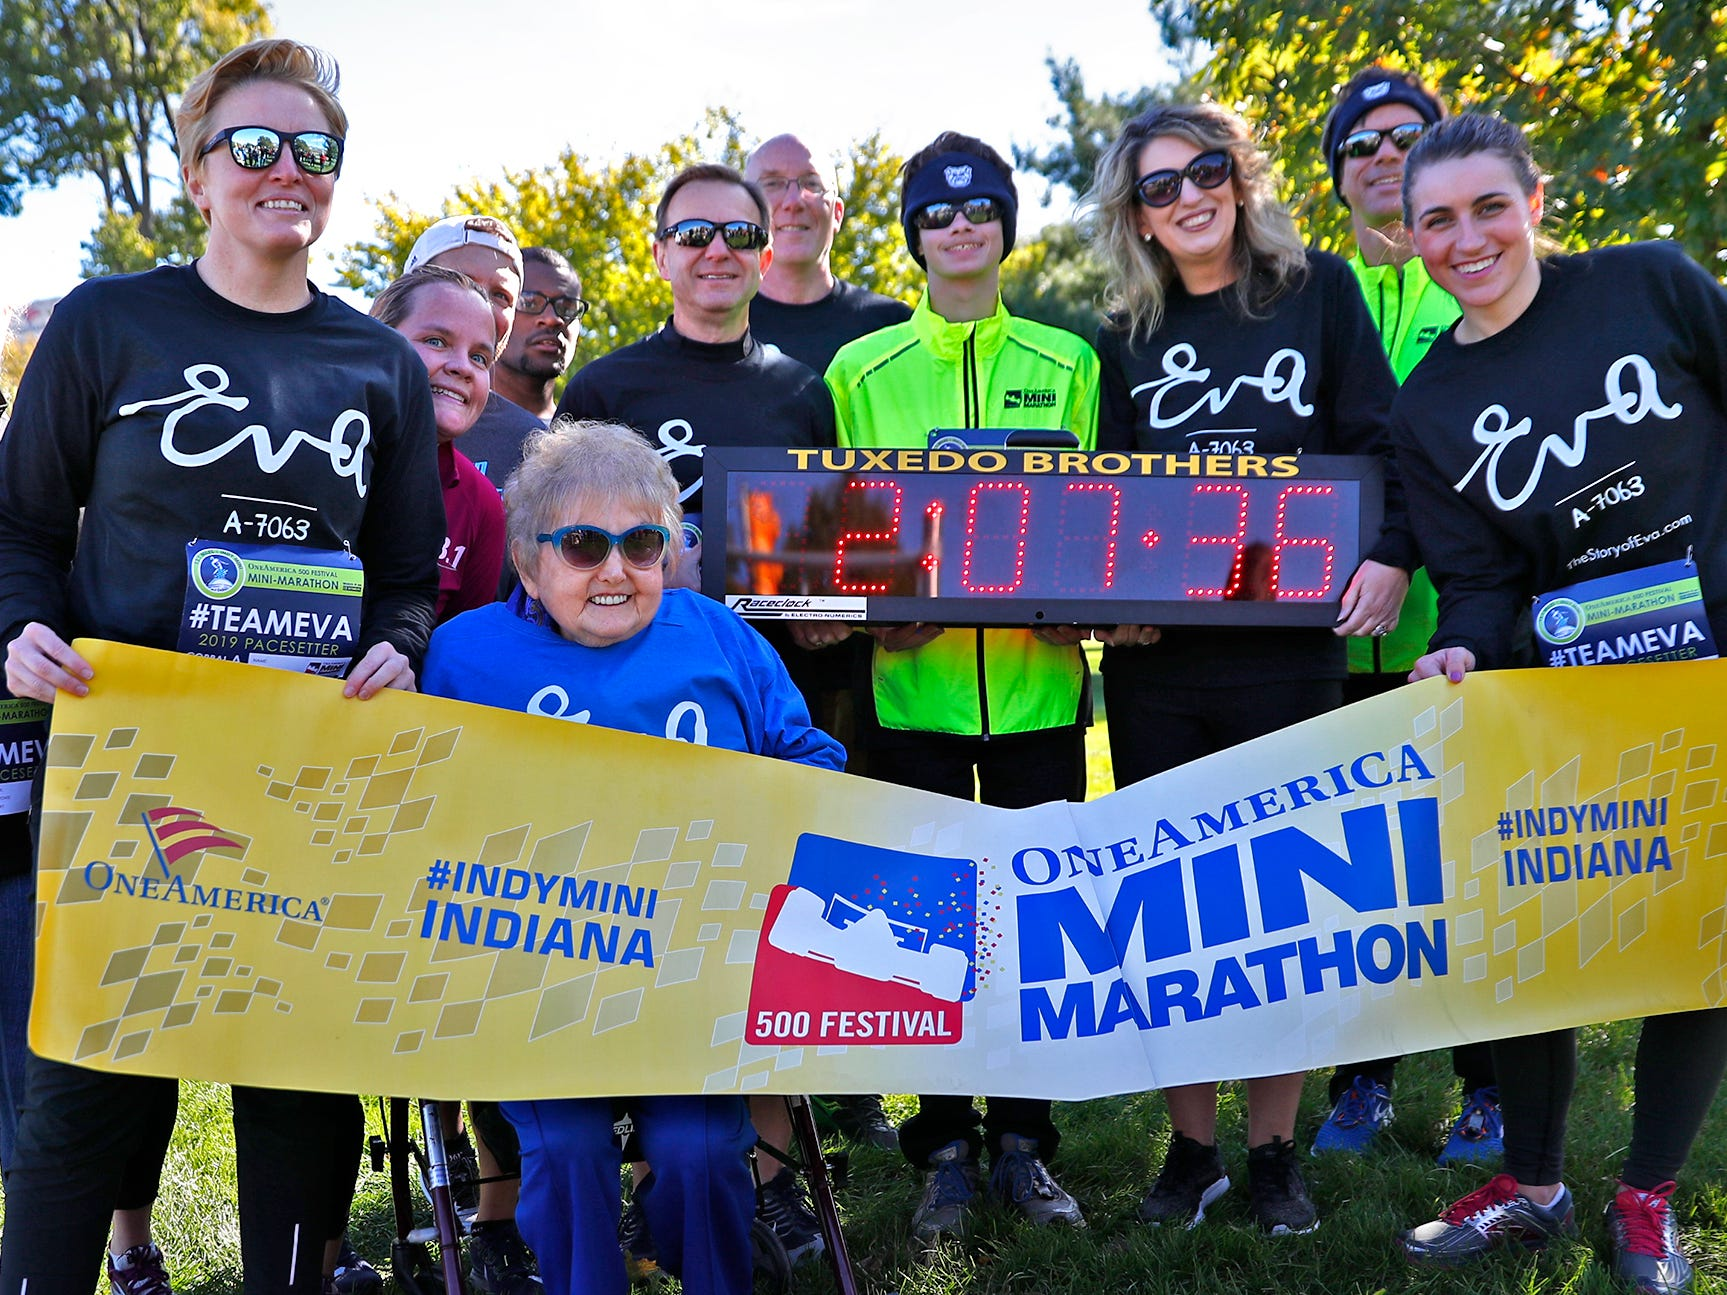 Holocaust survivor Eva Kor joins others for a photo after the relay running of the pace-setting run for the 2019 OneAmerica 500 Festival Mini-Marathon, Wednesday, Oct. 24, 2018.  The 500 Festival will donate $1 to the CANDLES Holocaust Museum in Terre Haute for every mini-marathon participant who finishes the 2019 race in a better time than Team Eva, which was 2 hours, 7 minutes, 36 seconds.  Kor ran the very last part of the relay race to add to the time.